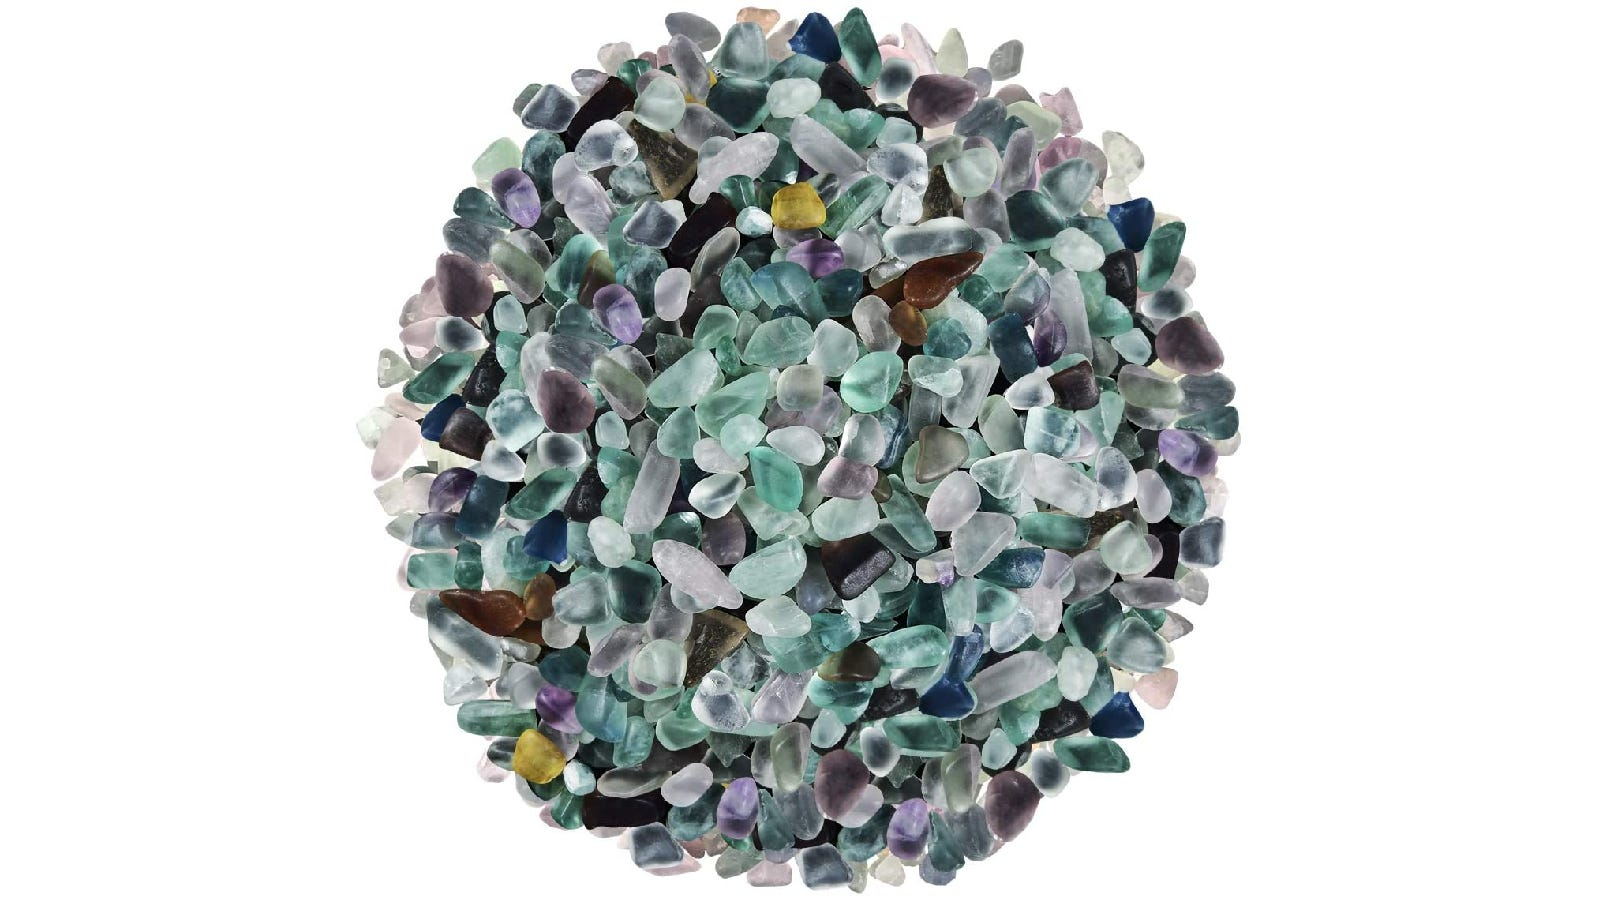 small circle of aquarium gravel in shades of blue, purple, and brown